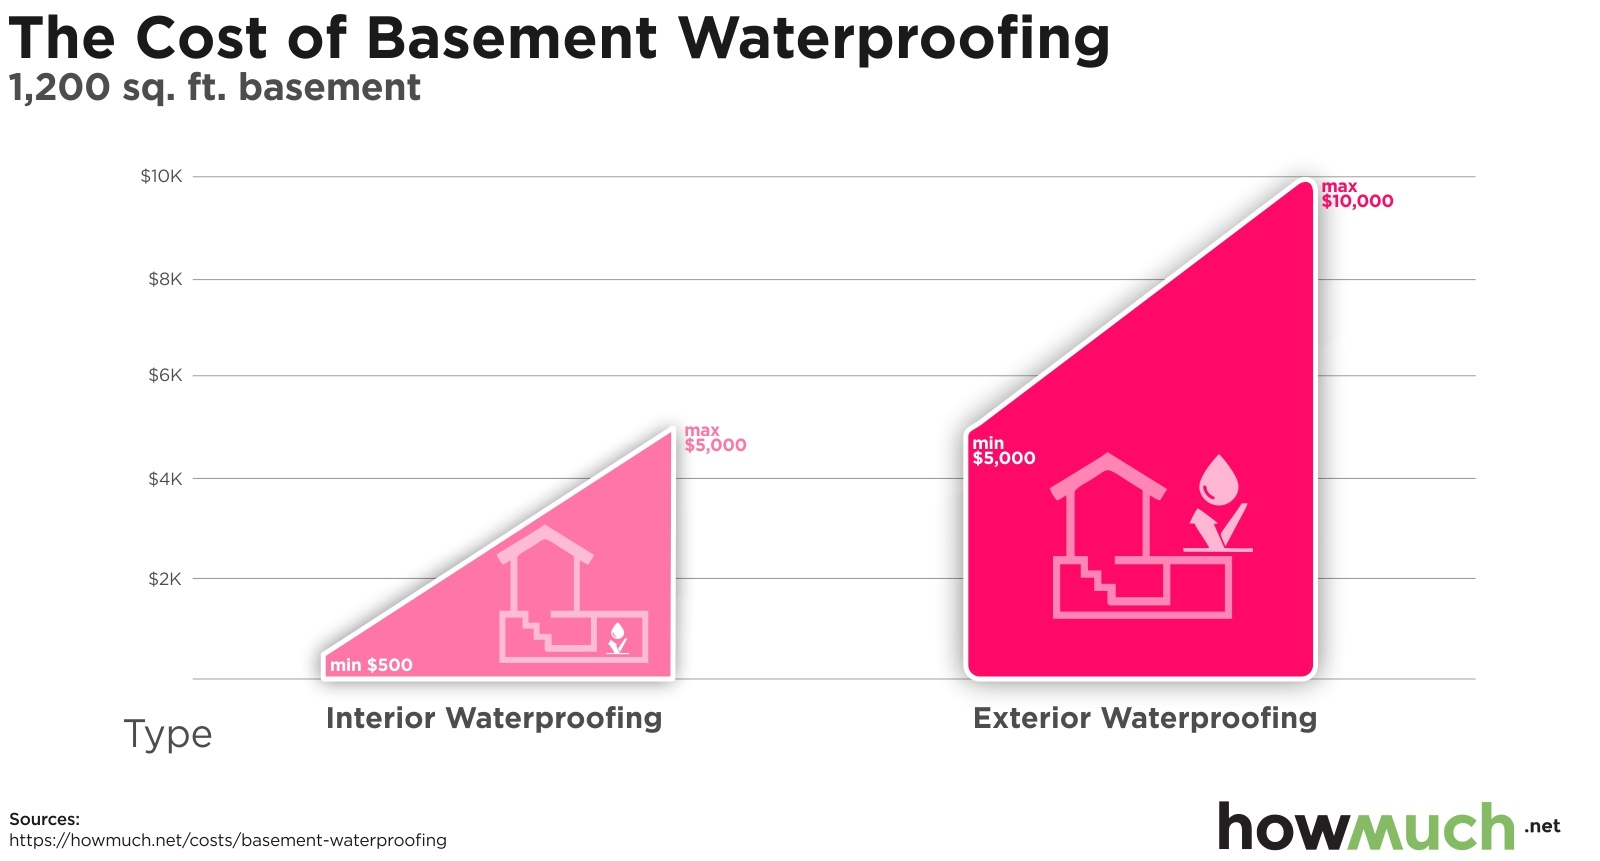 The Cost of Basement Waterproofing